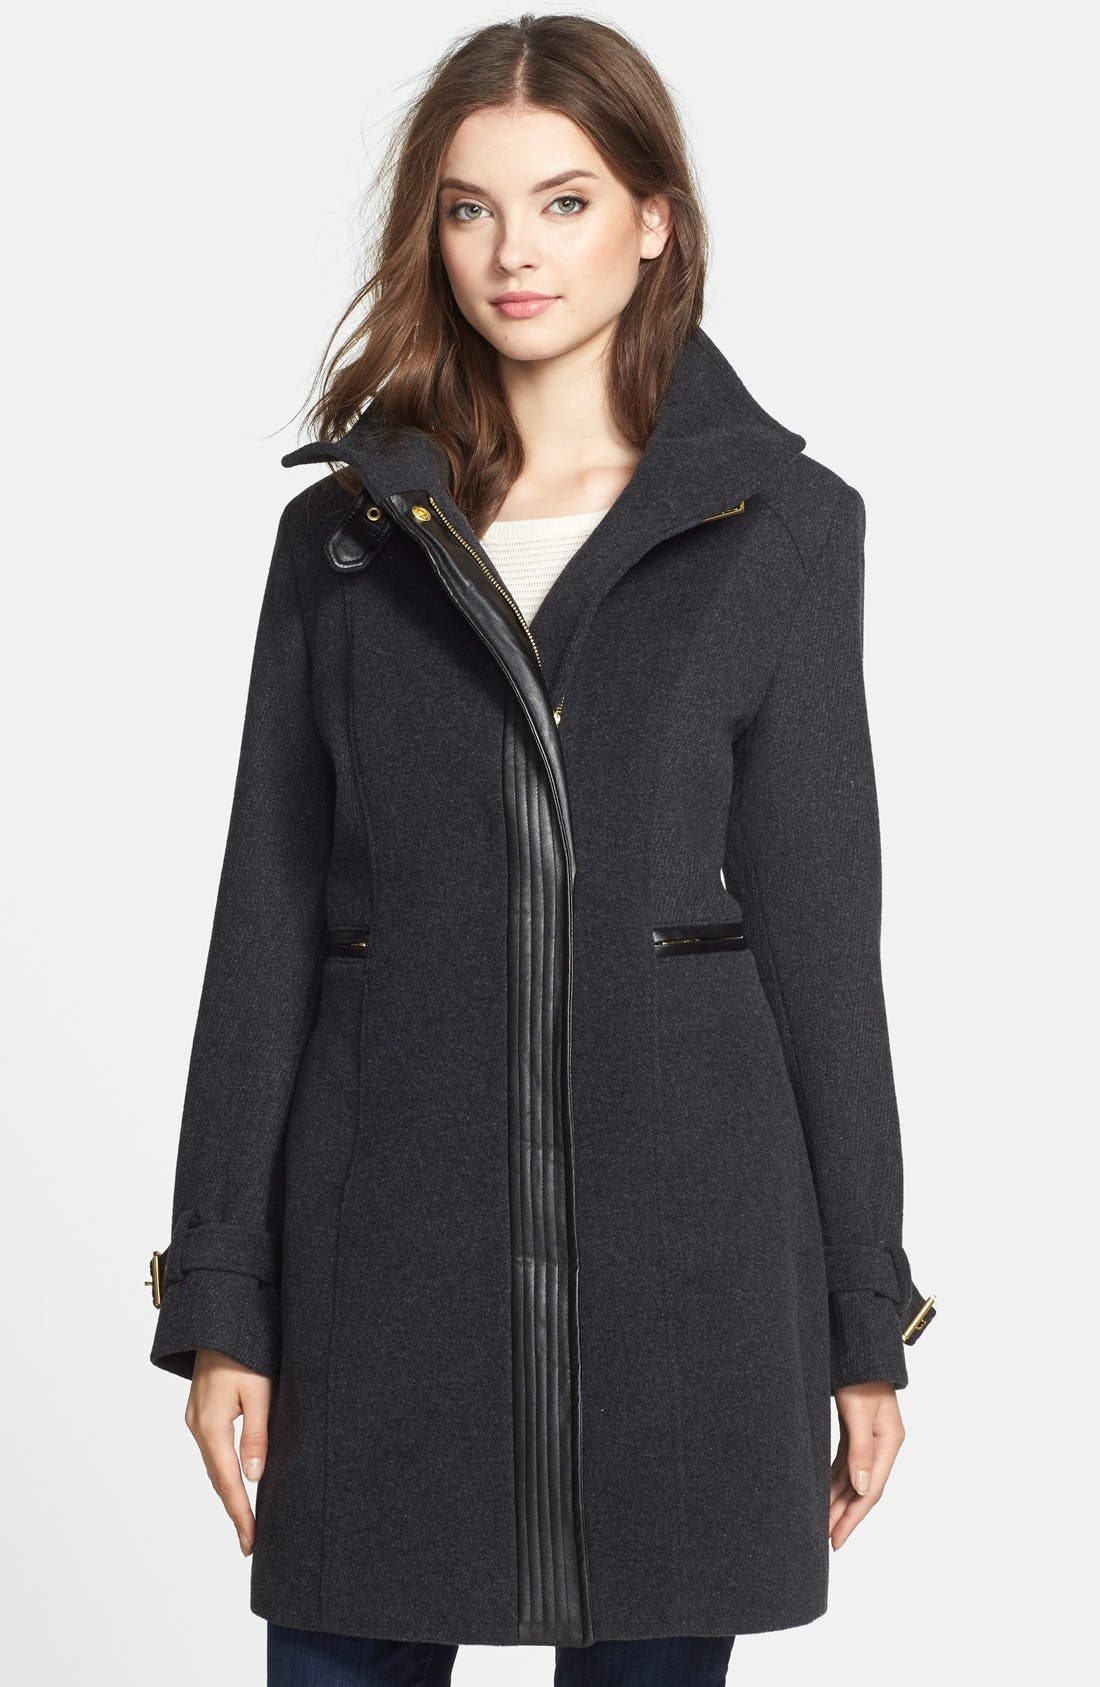 Alternate Image 1 Selected - Cole Haan Faux Leather Trim Textured Wool Coat